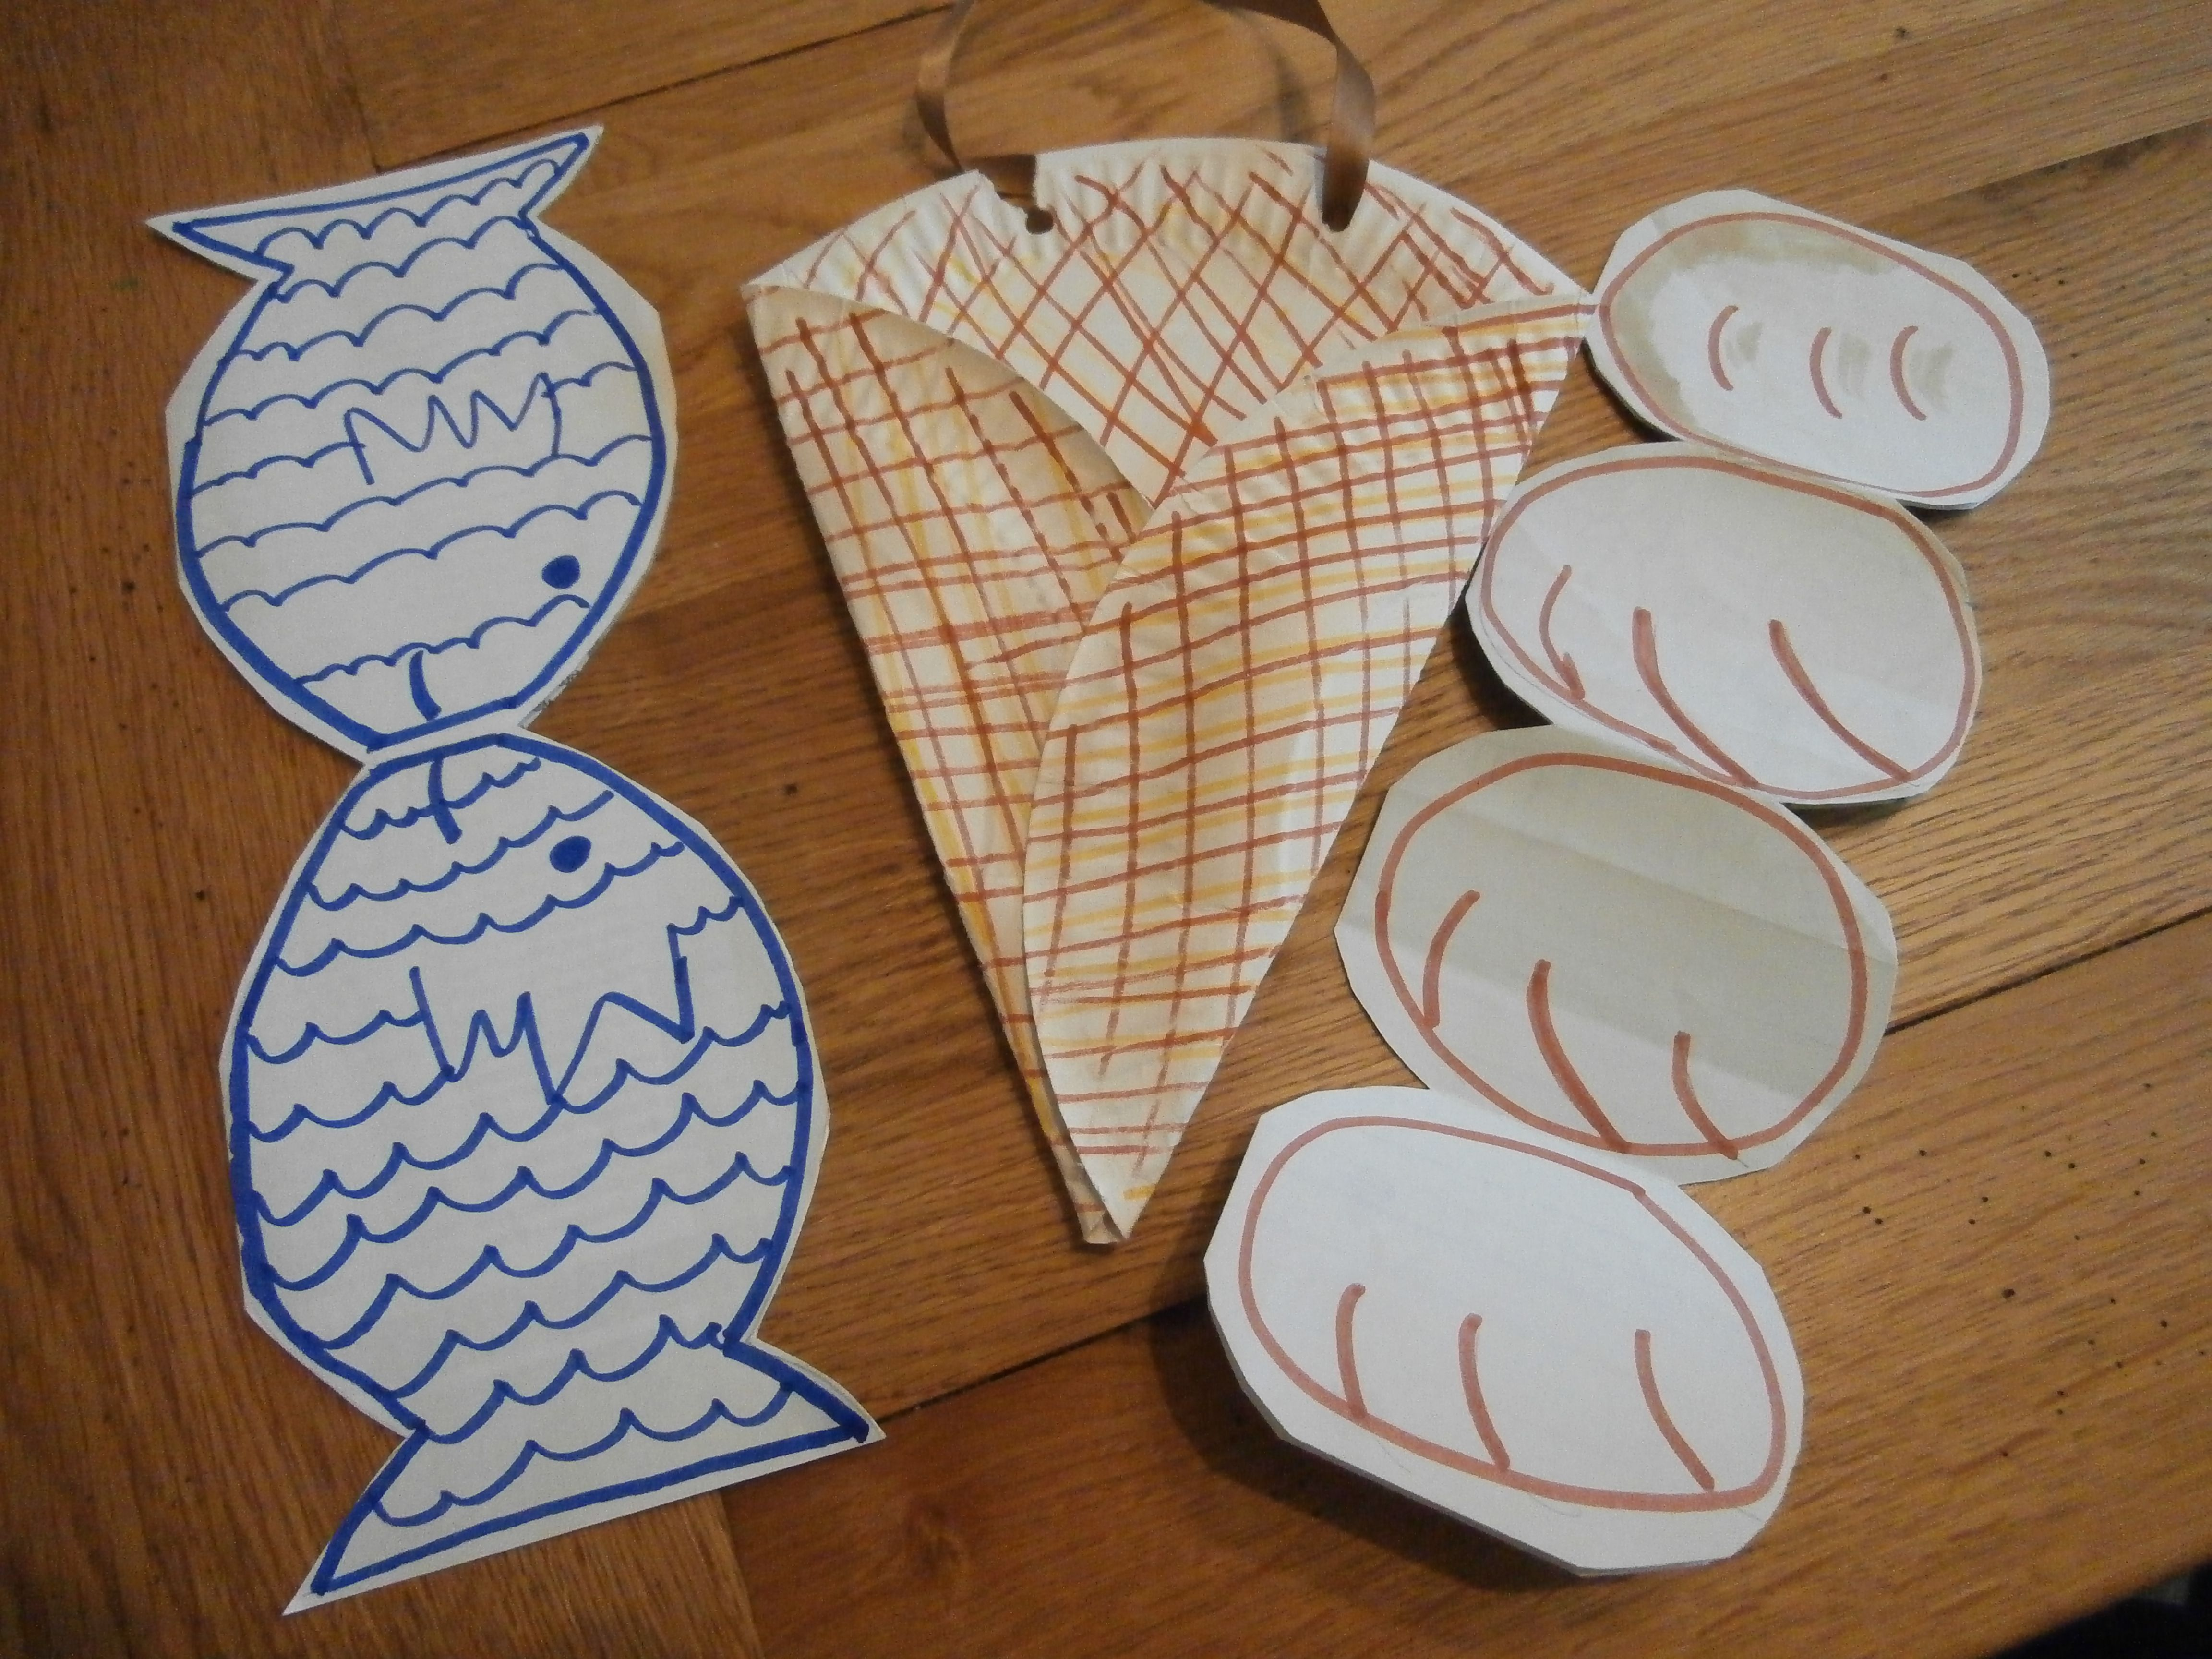 sunday school craft the loaves and the fishes basket made from a